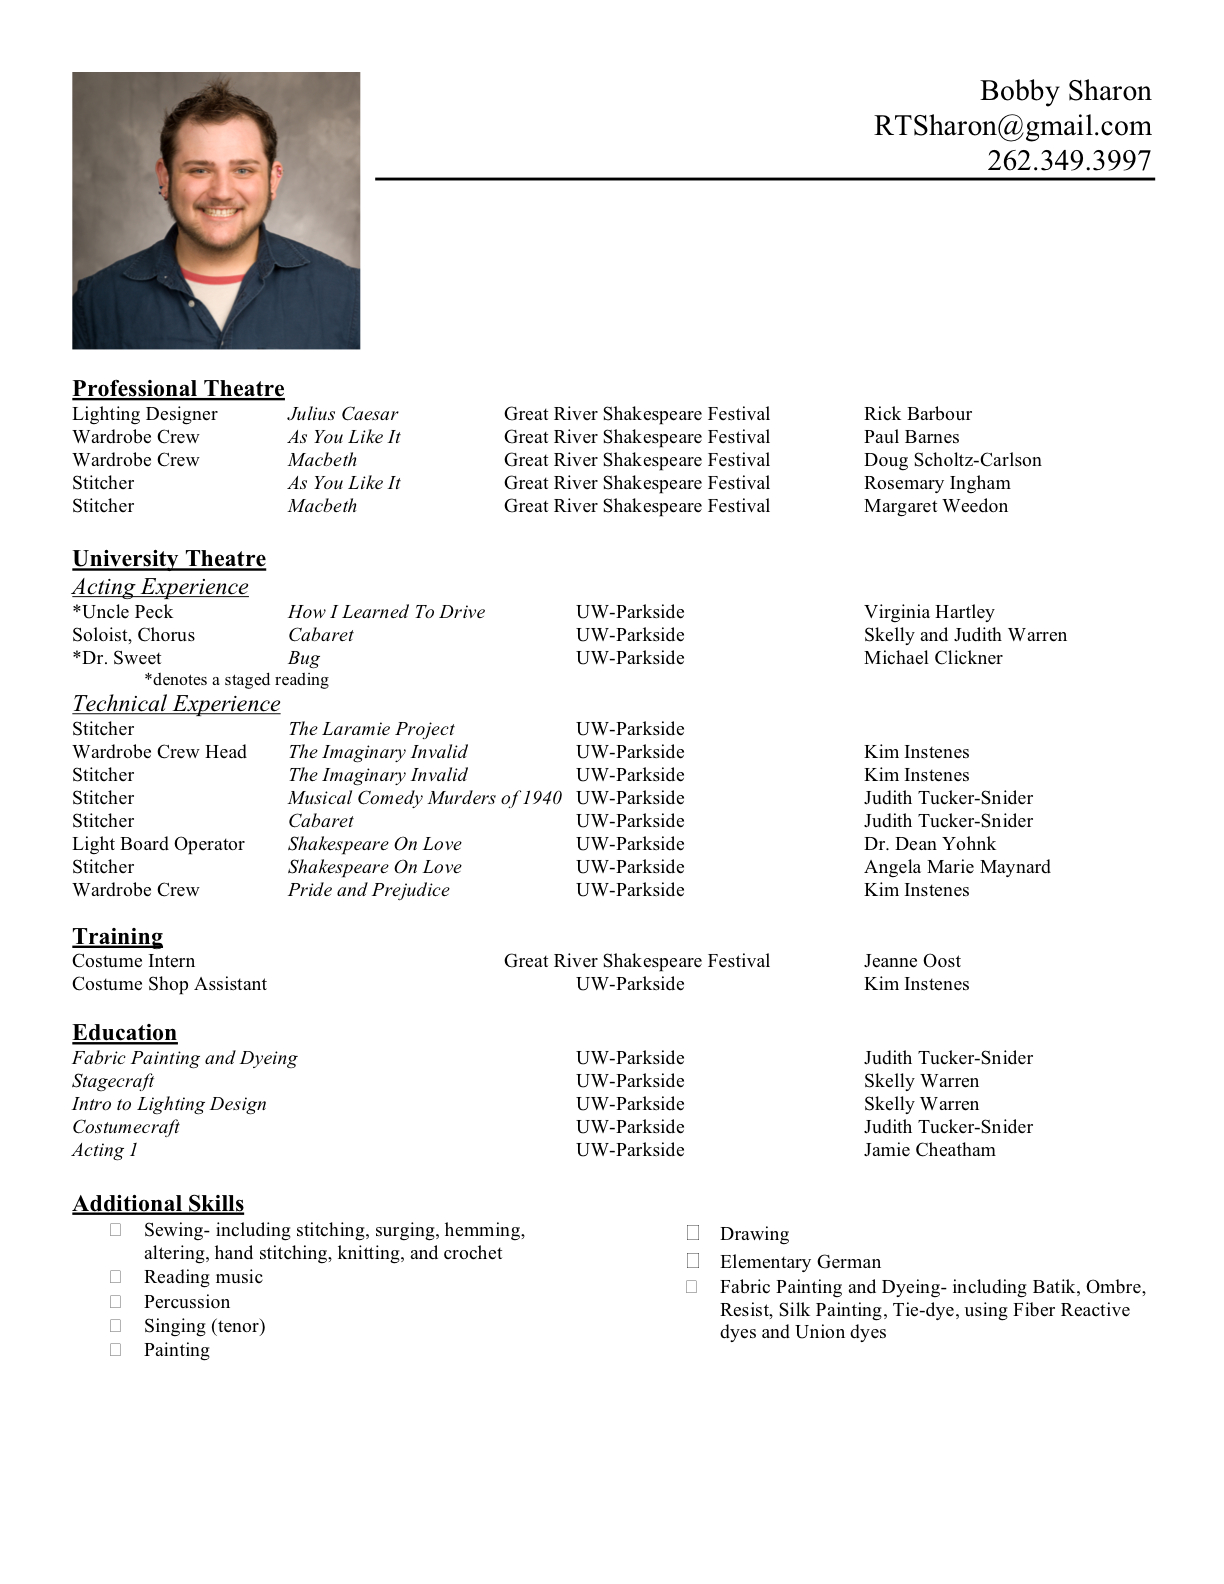 Examples of current resumes